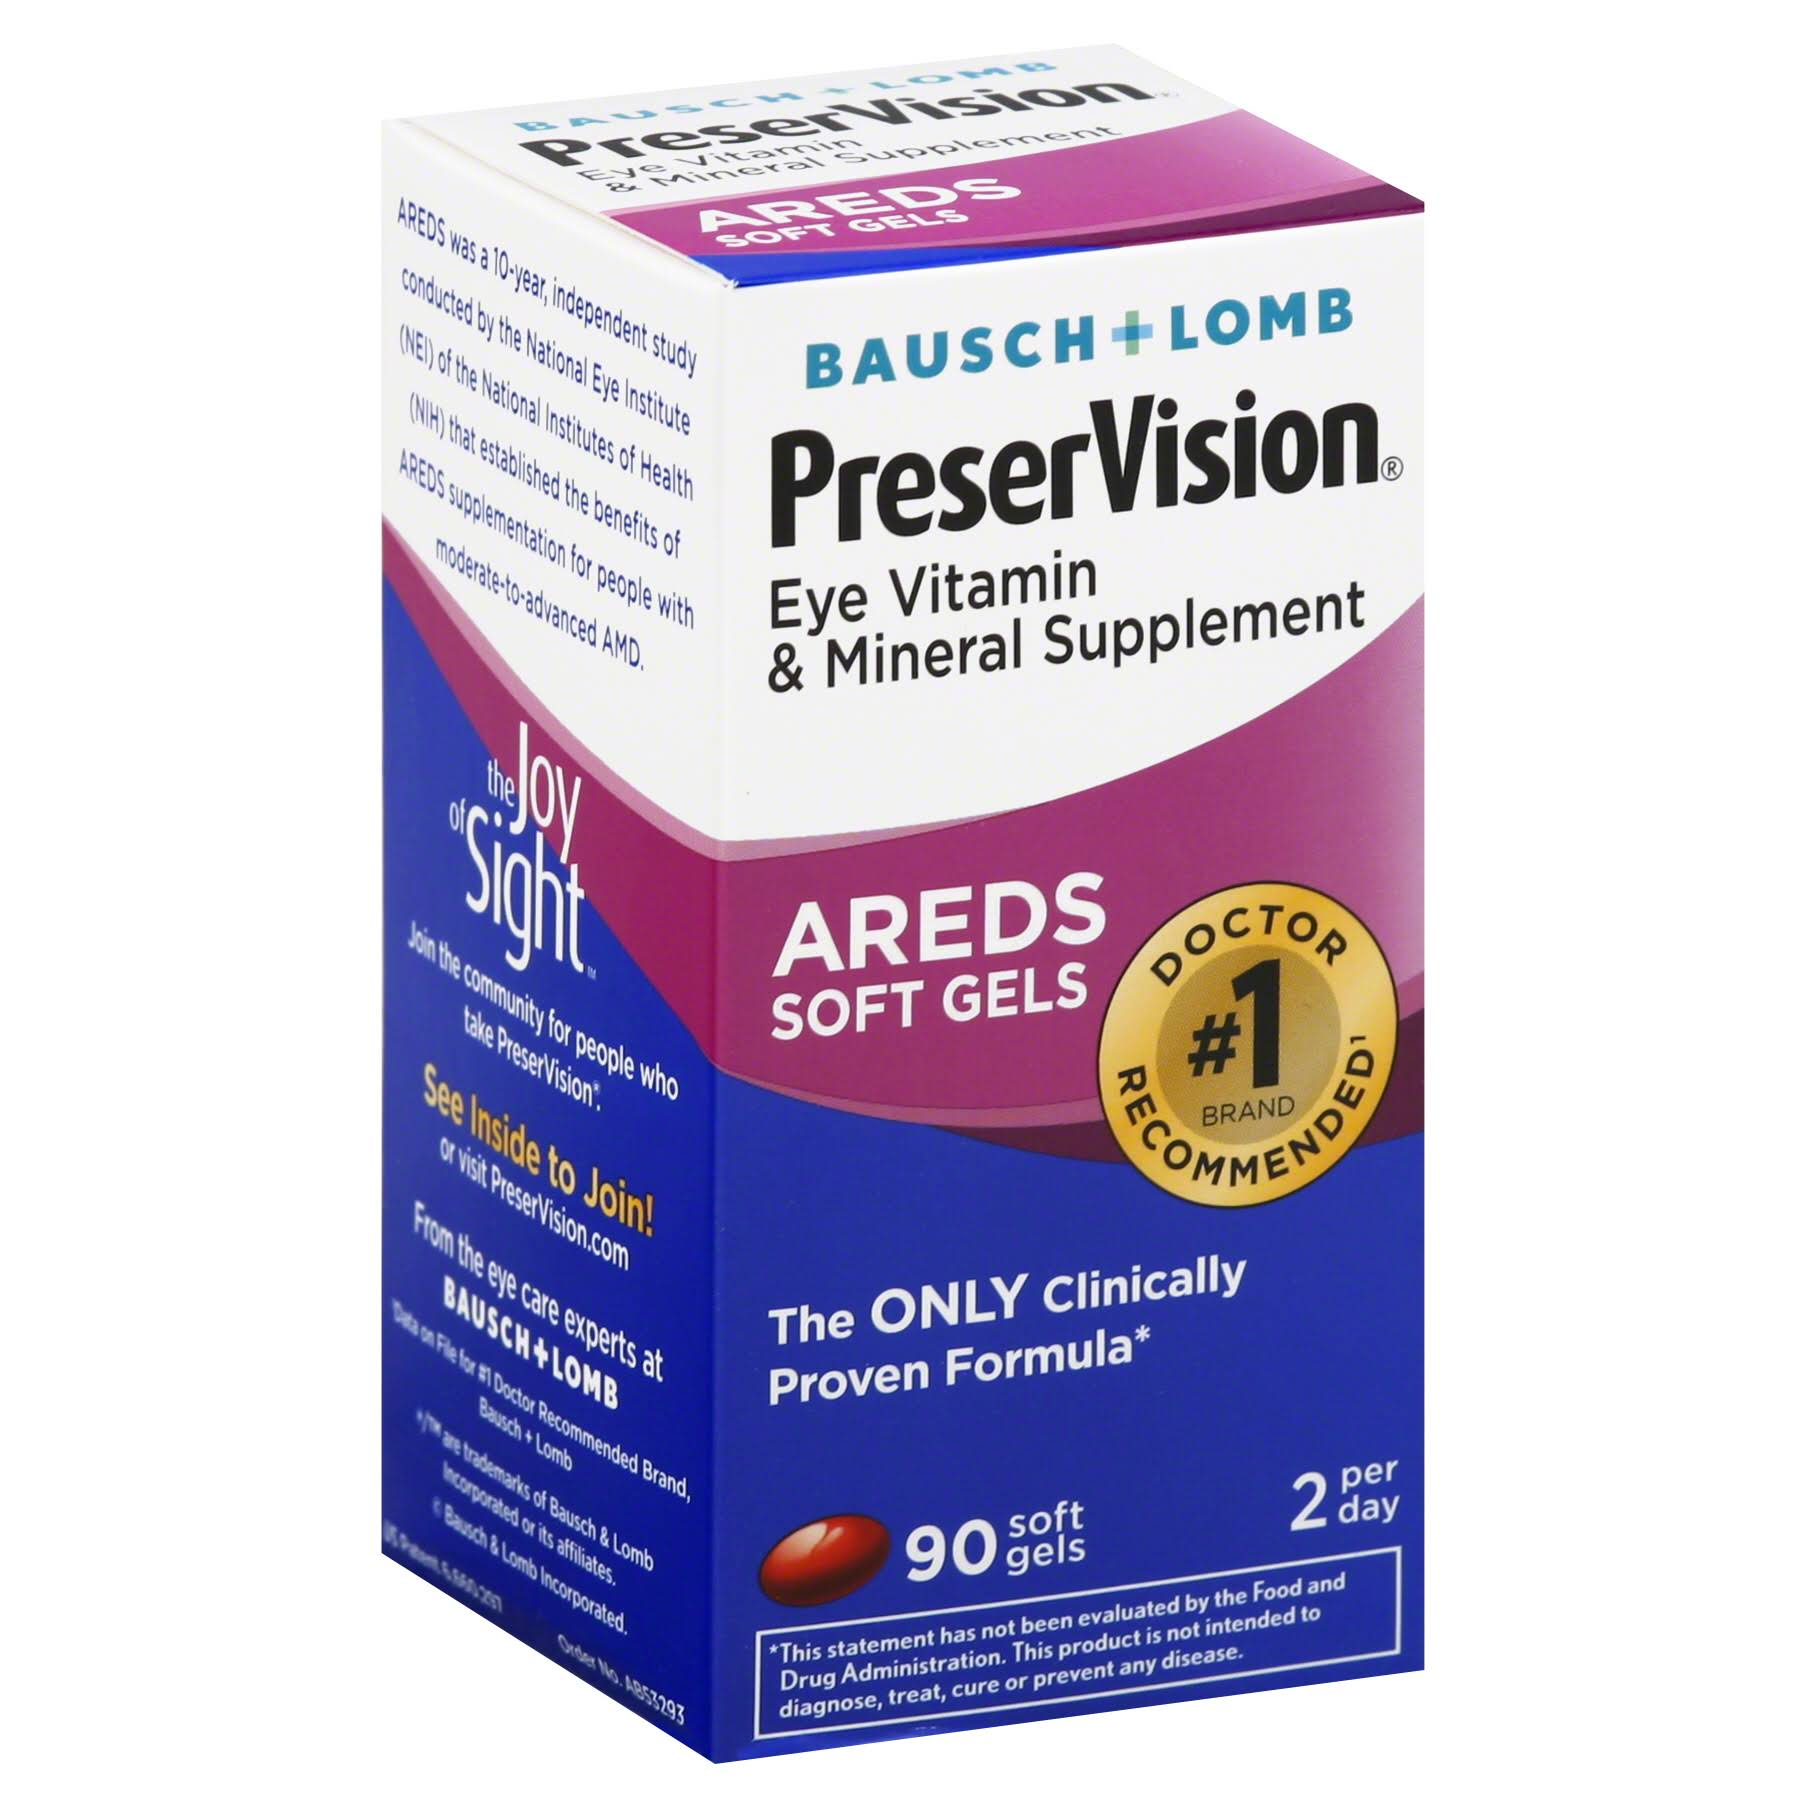 Bausch and Lomb Preser Vision Eye Vitamin and Mineral Supplement - 90ct